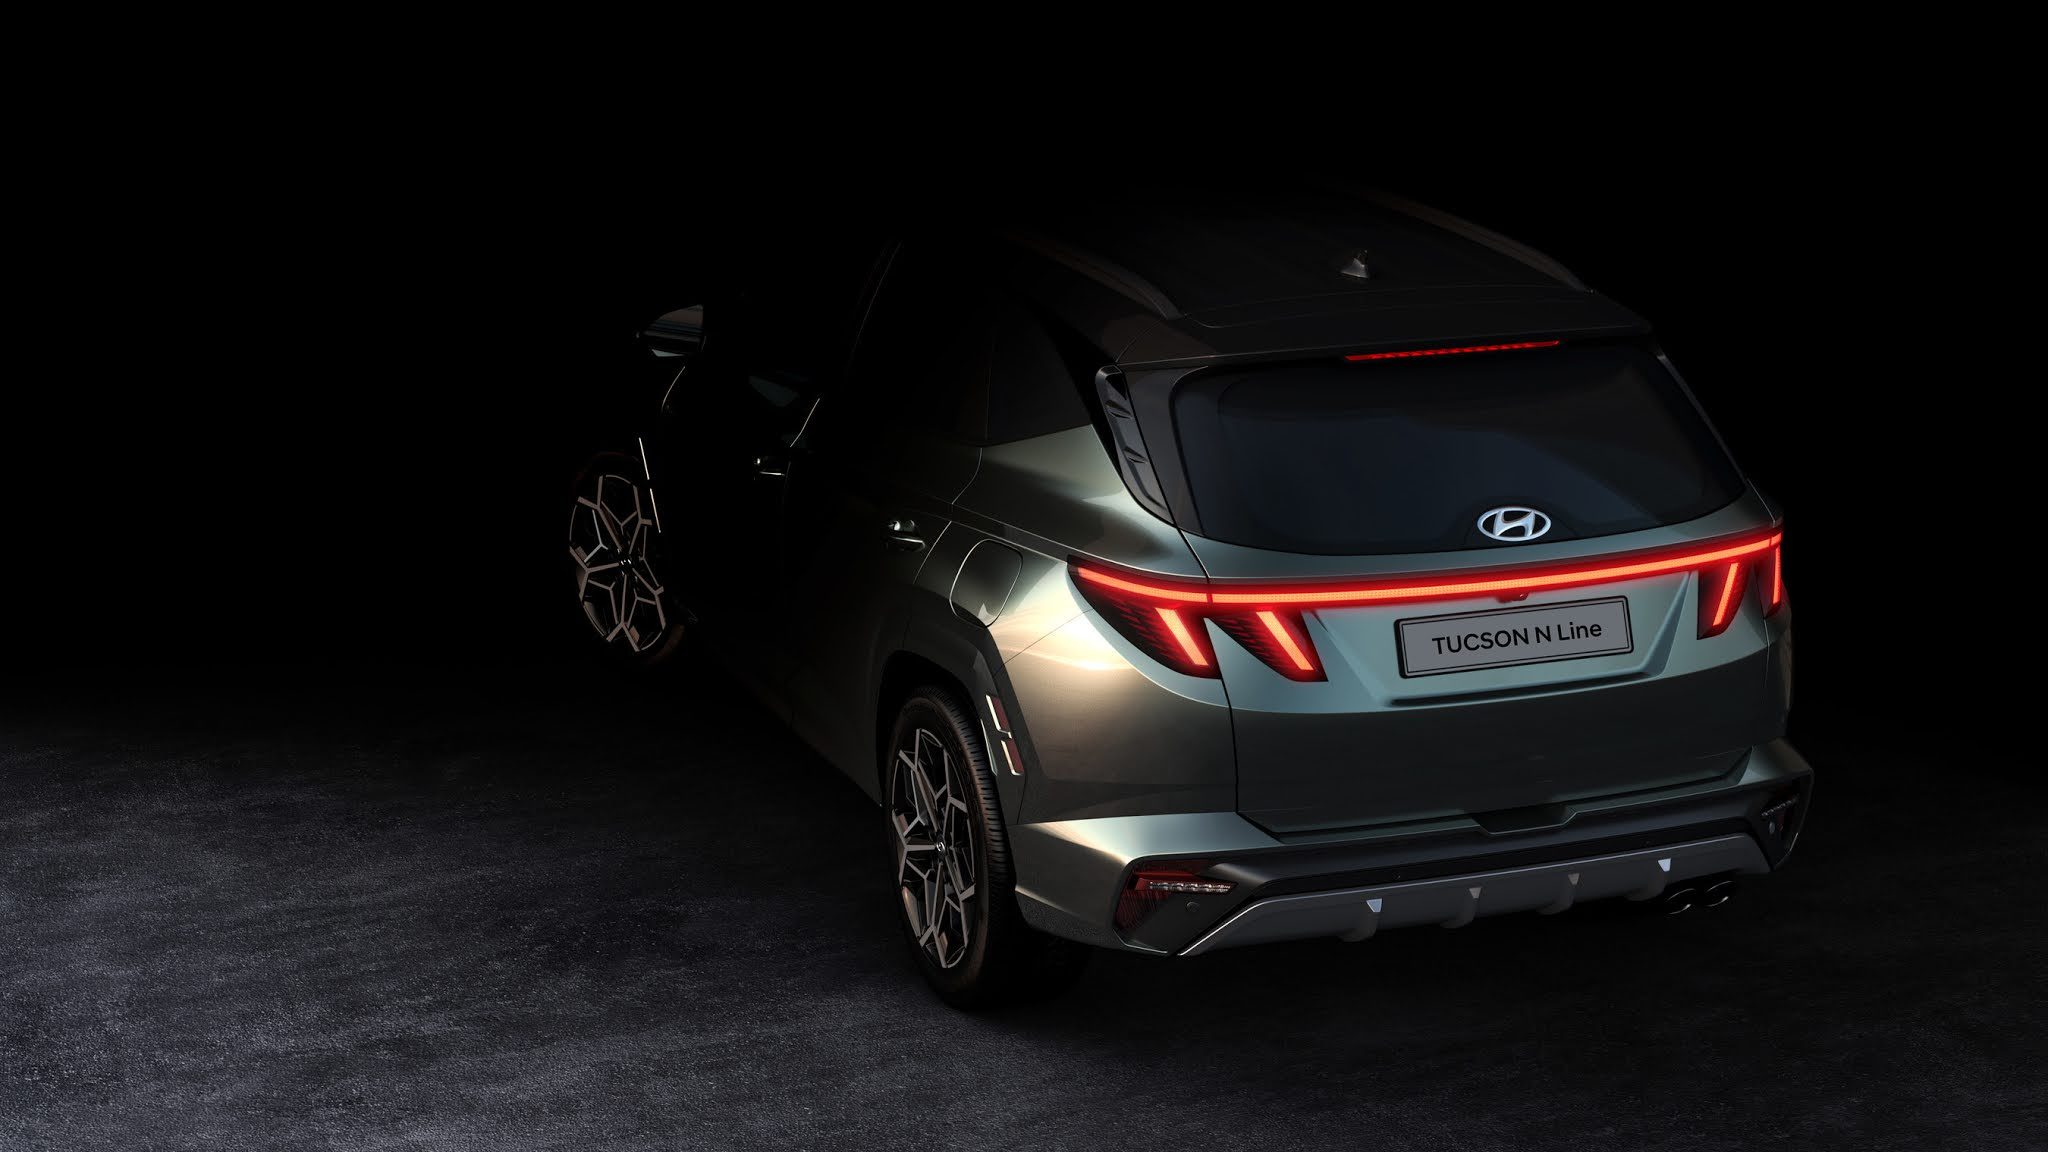 Hyundai Reveals Tucson N Line Teasers, Sustaining Aggressive N brand Expansion through 2022